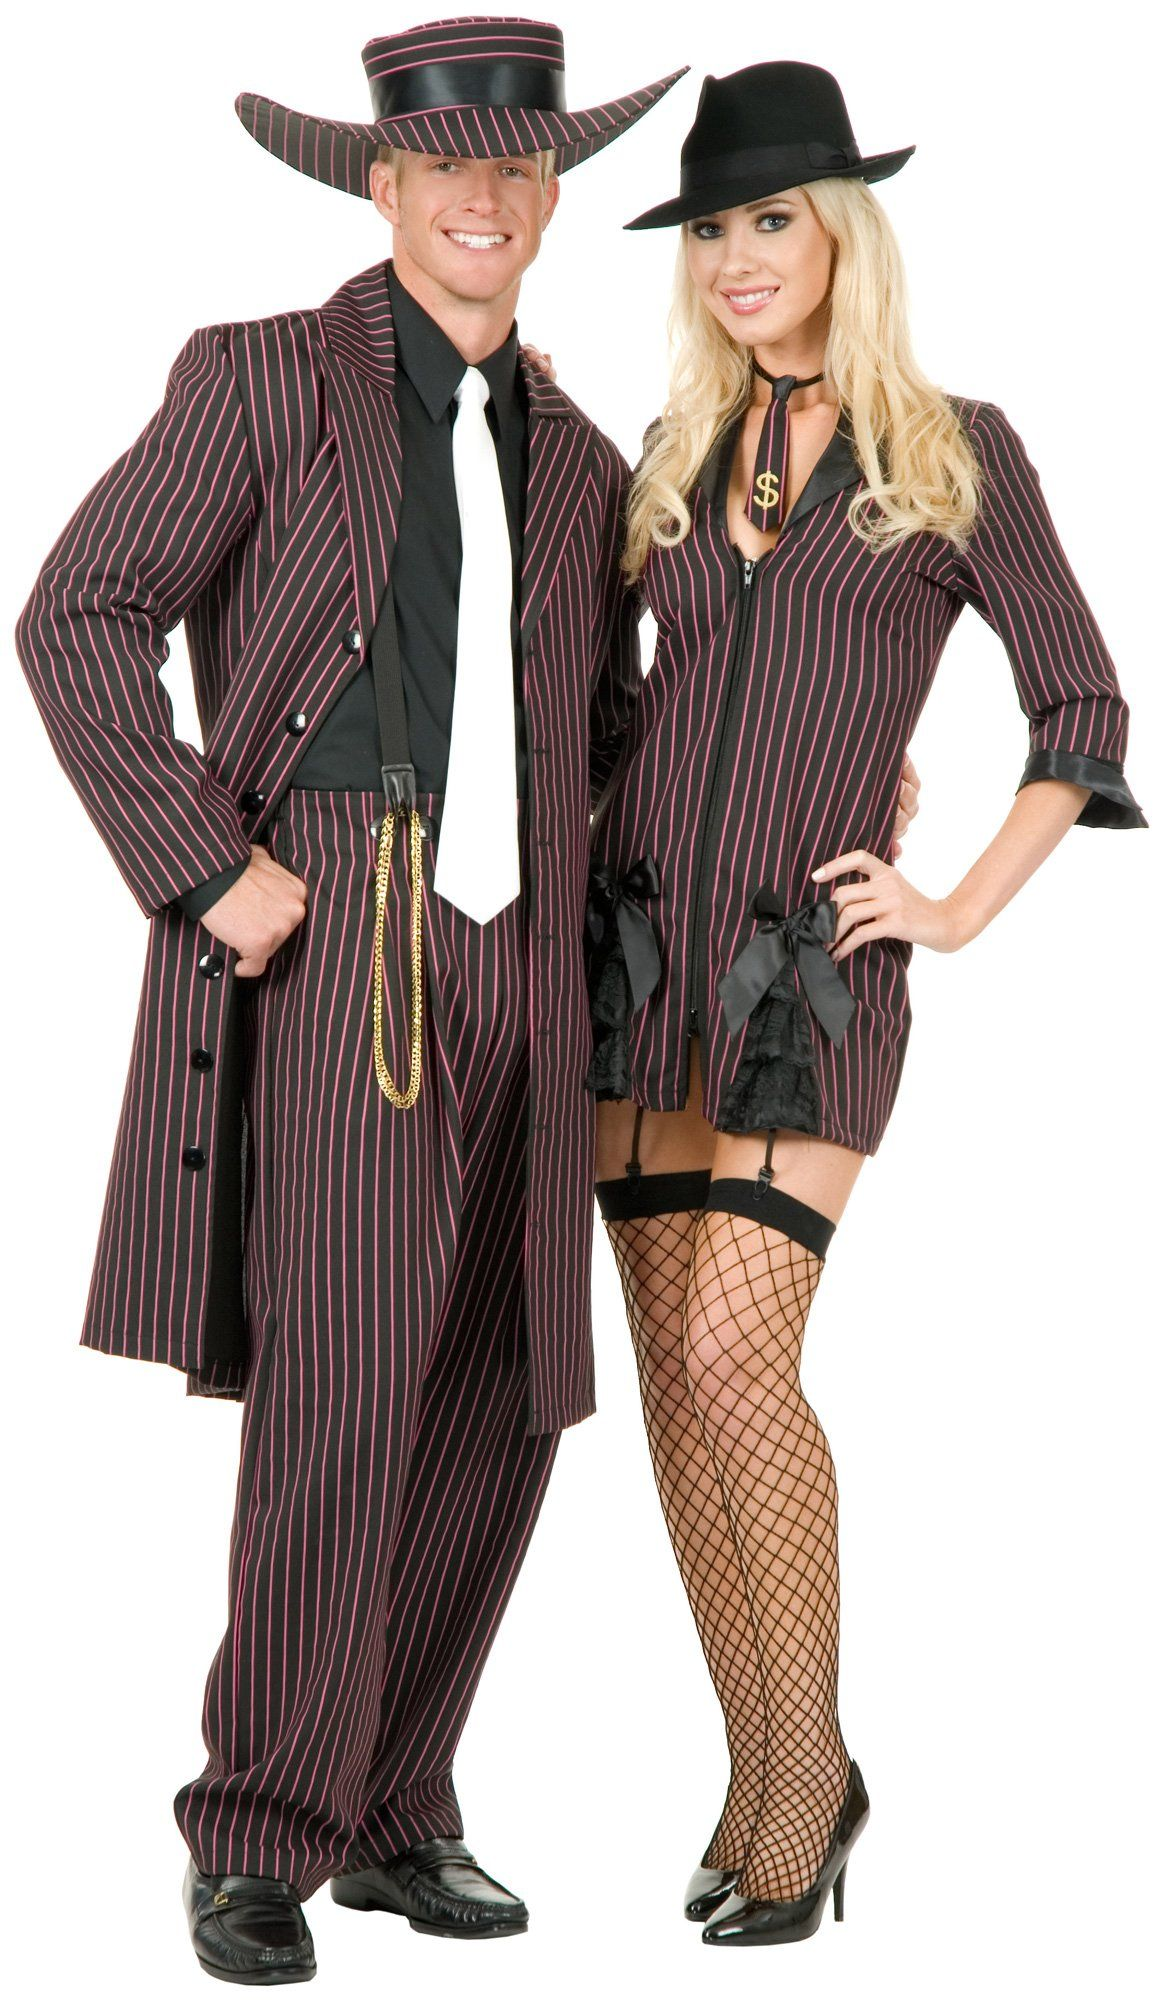 Bonnie And Clyde Costumes Party City Zoot Suit Popular Halloween Costumes Party City Costumes